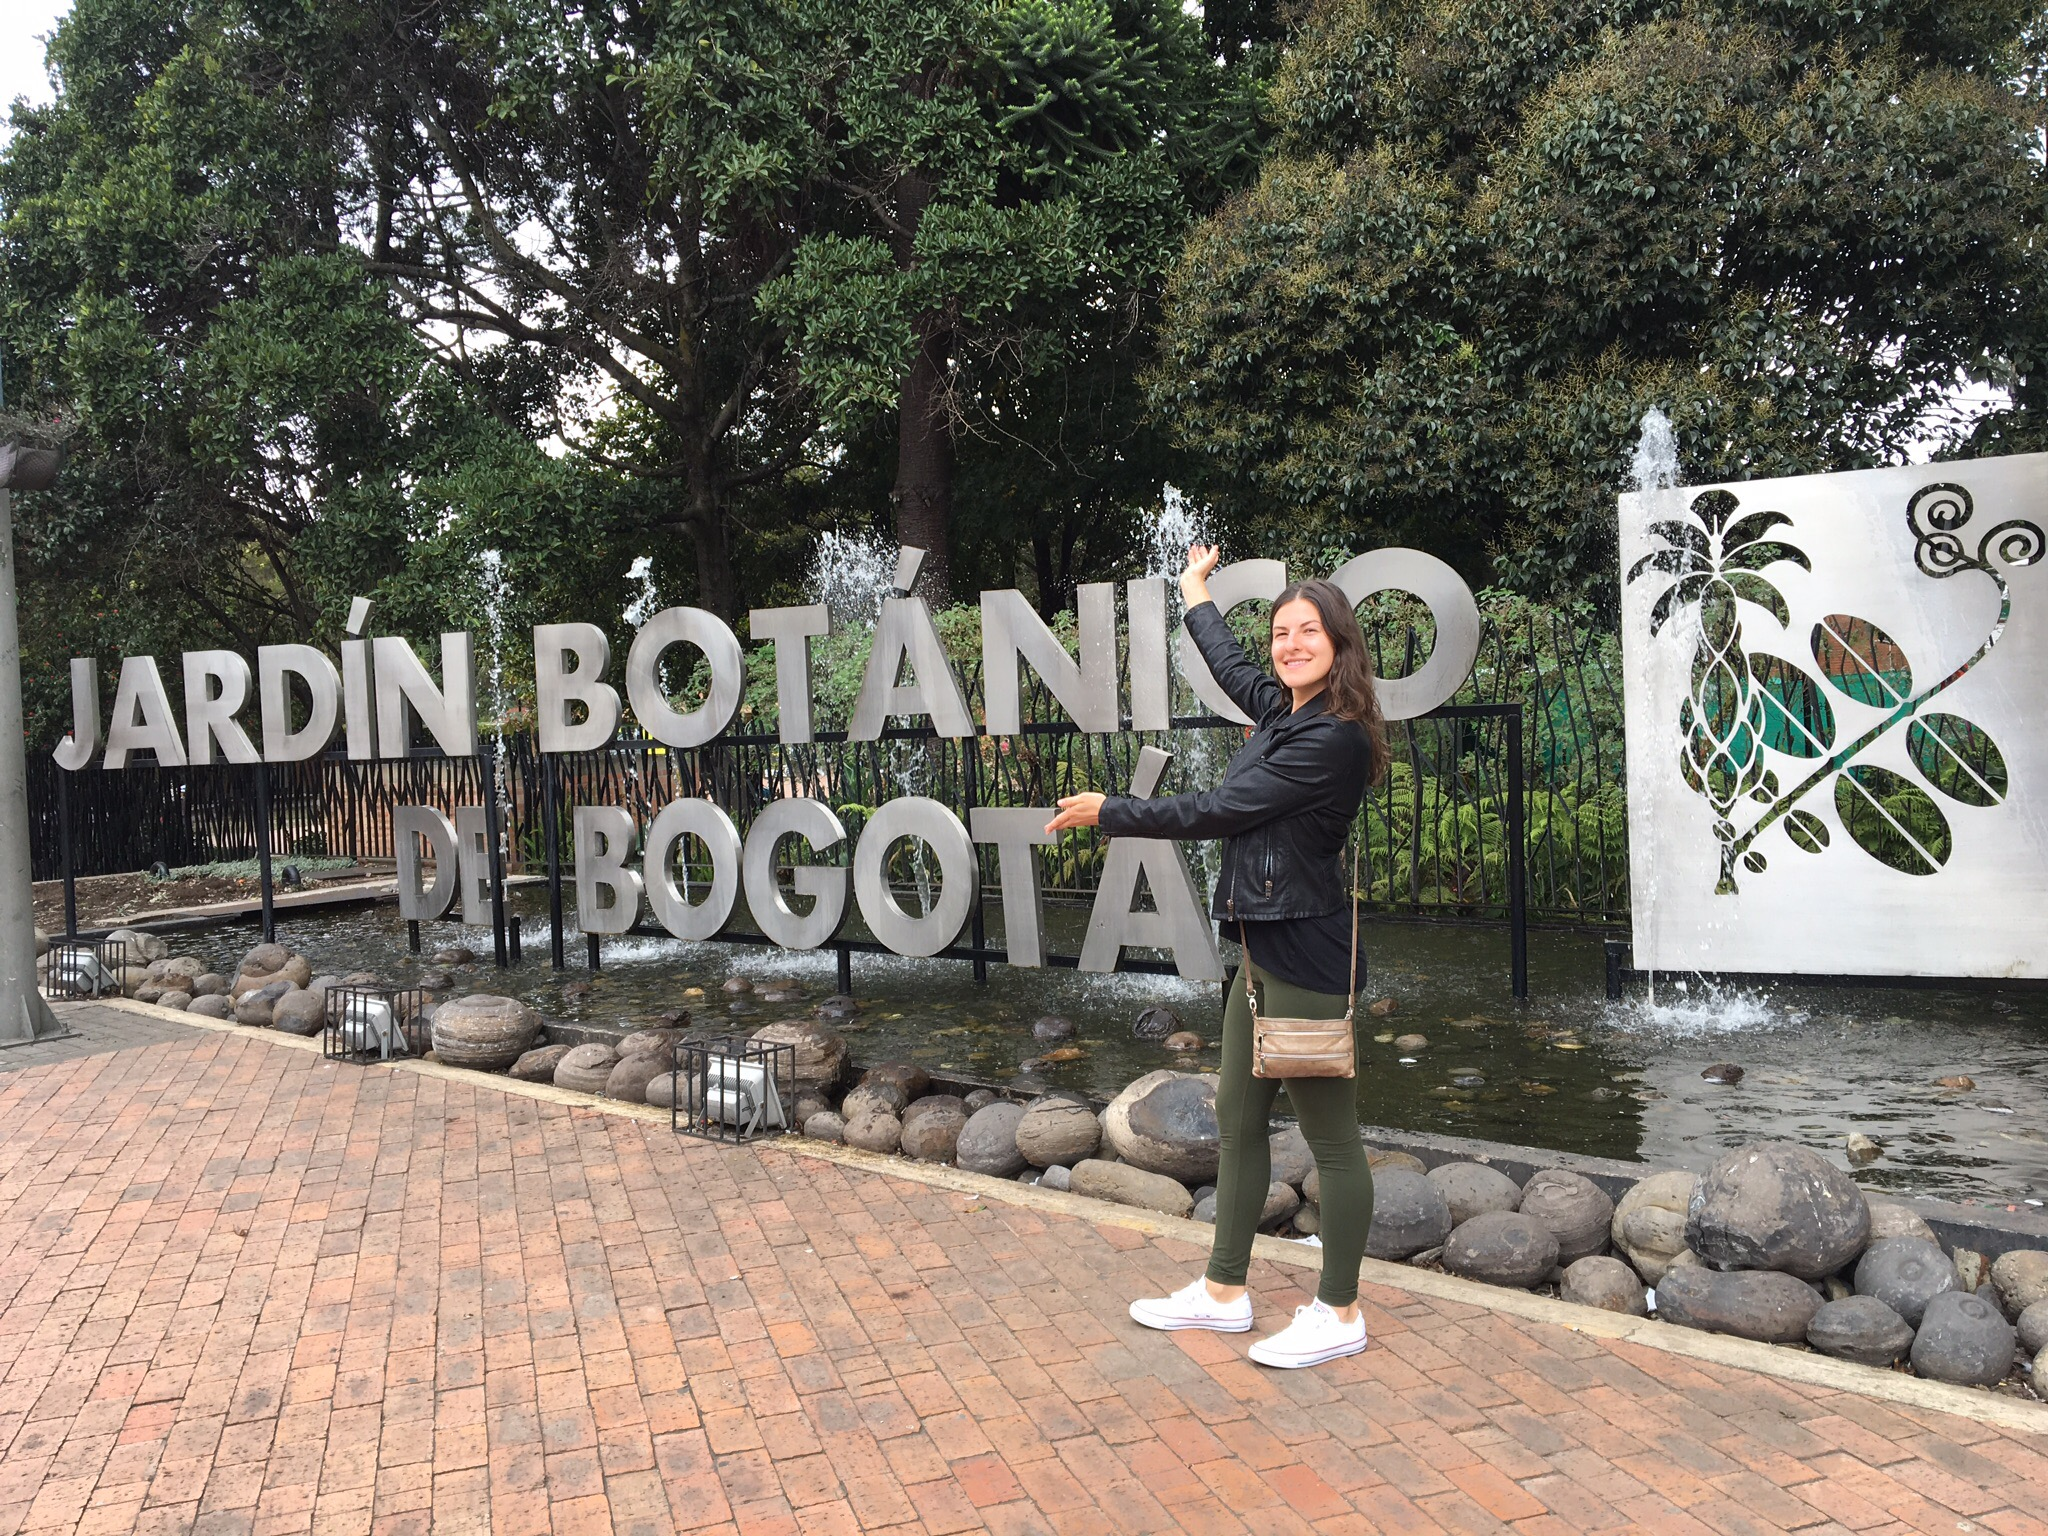 We found the Botanical Gardens in Bogota to be pretty underwhelming.